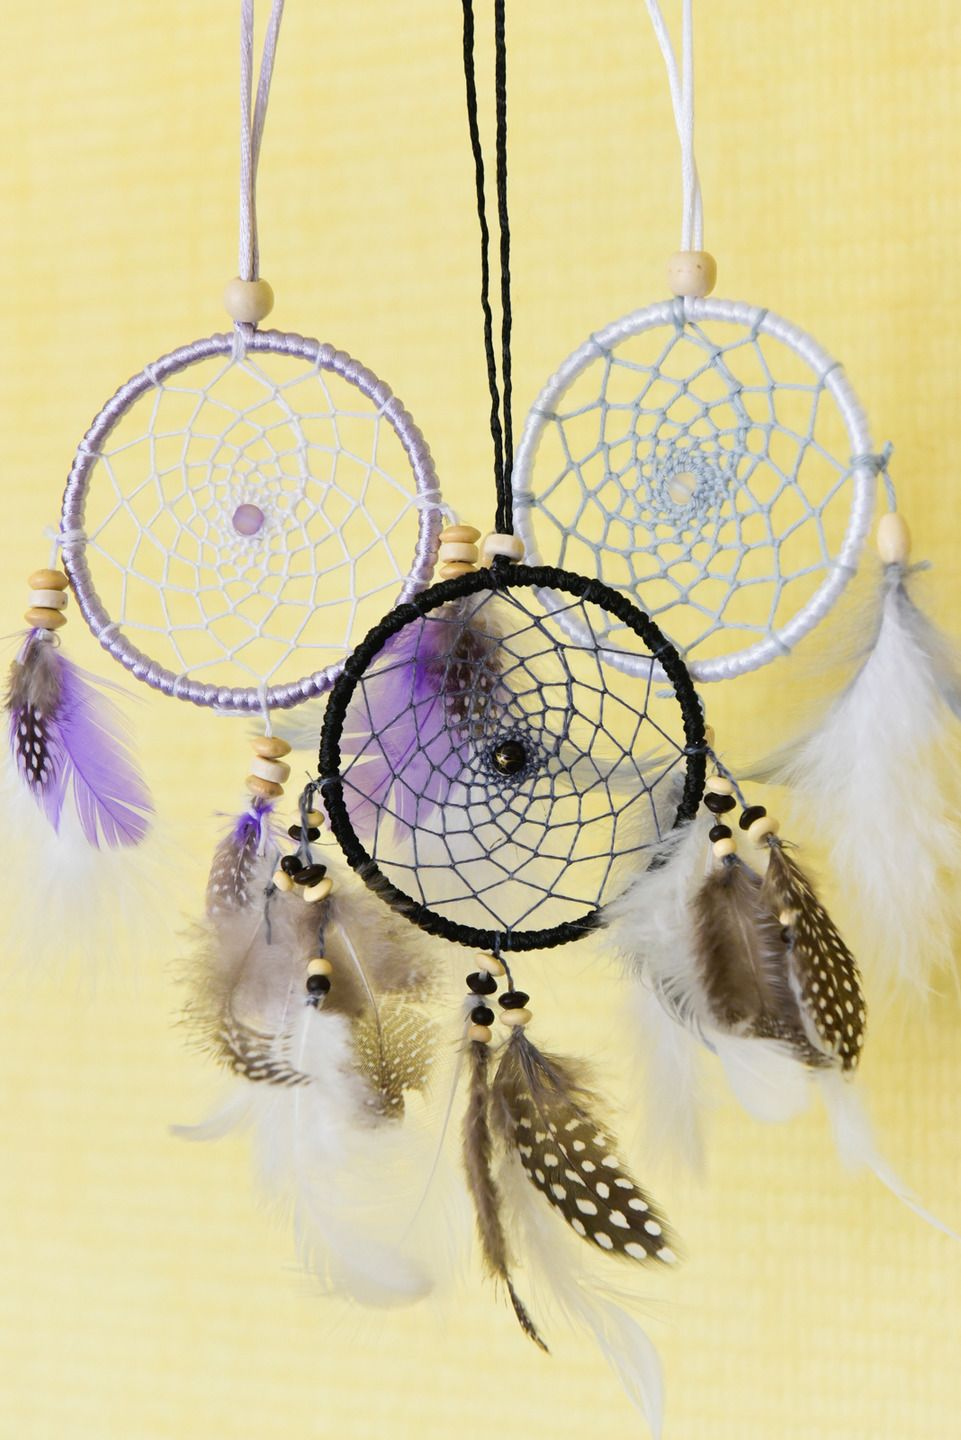 attrape r ves dreamcatcher fait main personnalisable taille et couleurs 1 cercle 8 cm. Black Bedroom Furniture Sets. Home Design Ideas